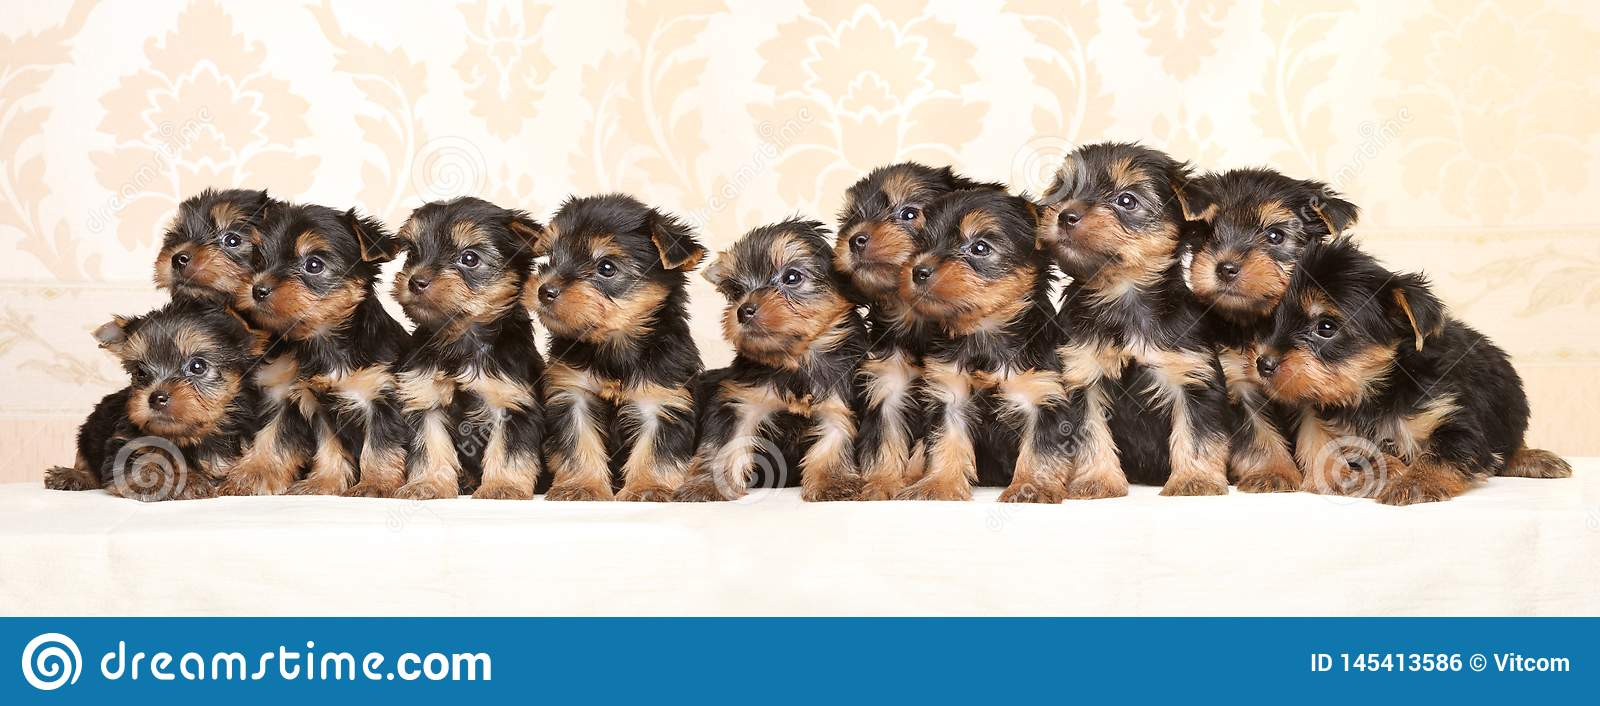 Large group of Yorkshire Terrier puppies